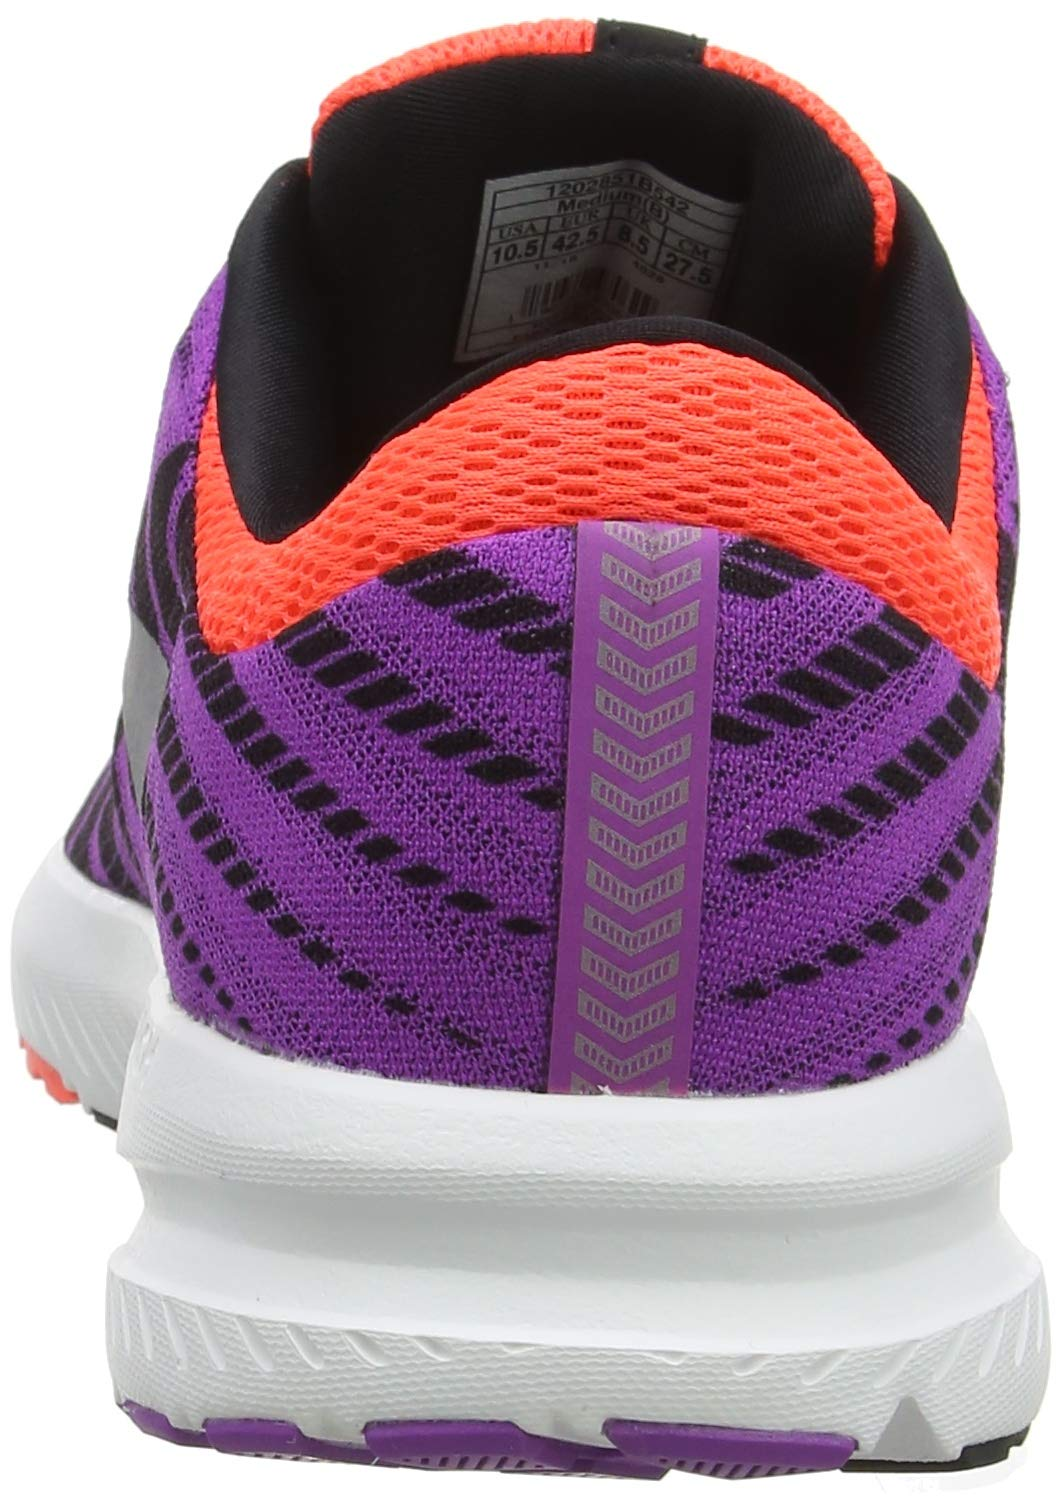 71kw25fCOBL - Brooks Women's Launch 6 Running Shoes